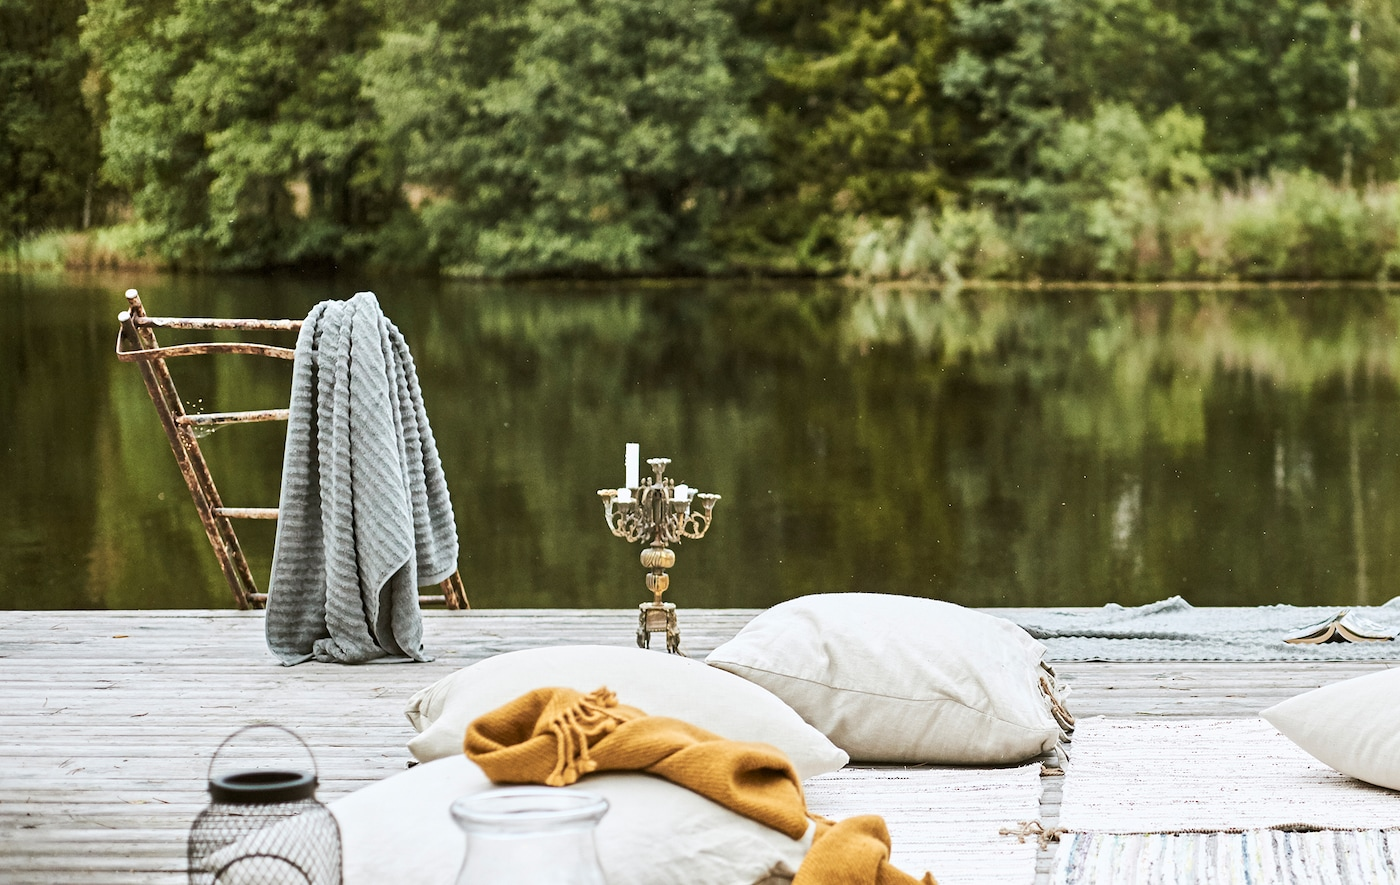 Decking by a lake, cushions and rugs on the floor Bedouin-style, a grey towel hangs on rusted steps next to a candelabra.